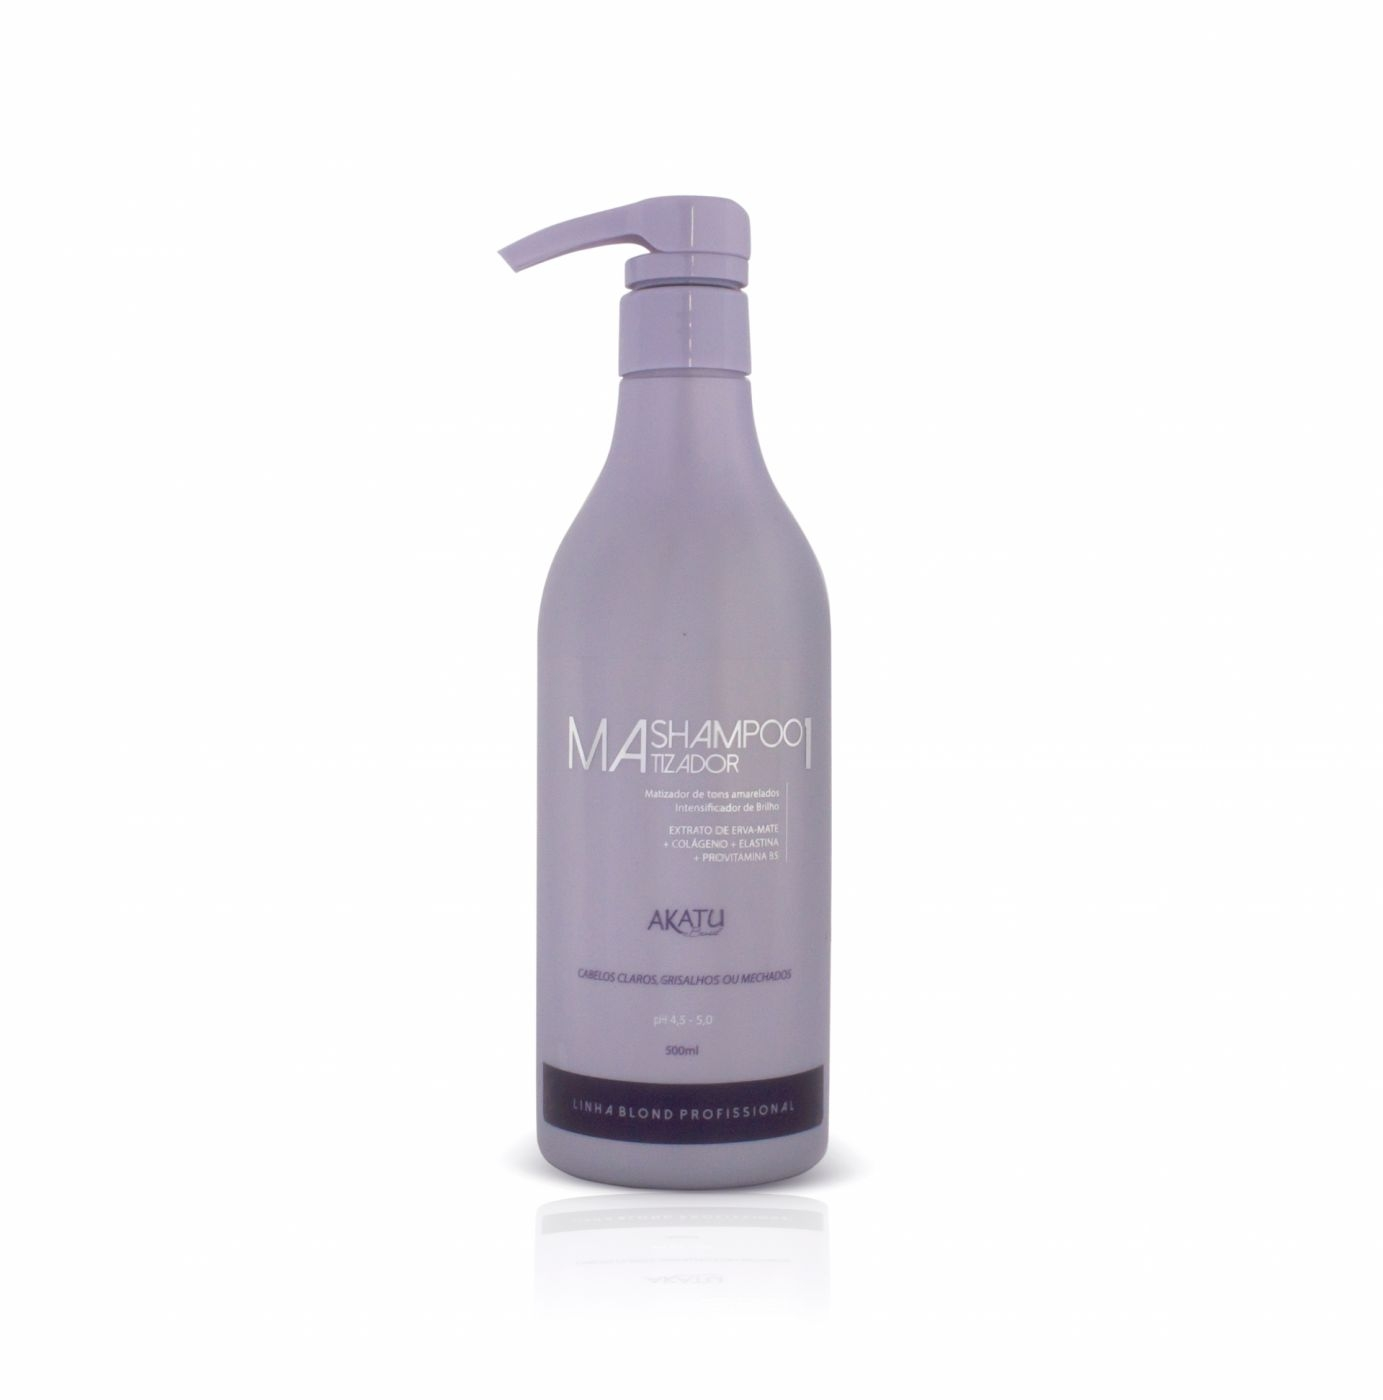 Shampoo Sublime Blond 500g